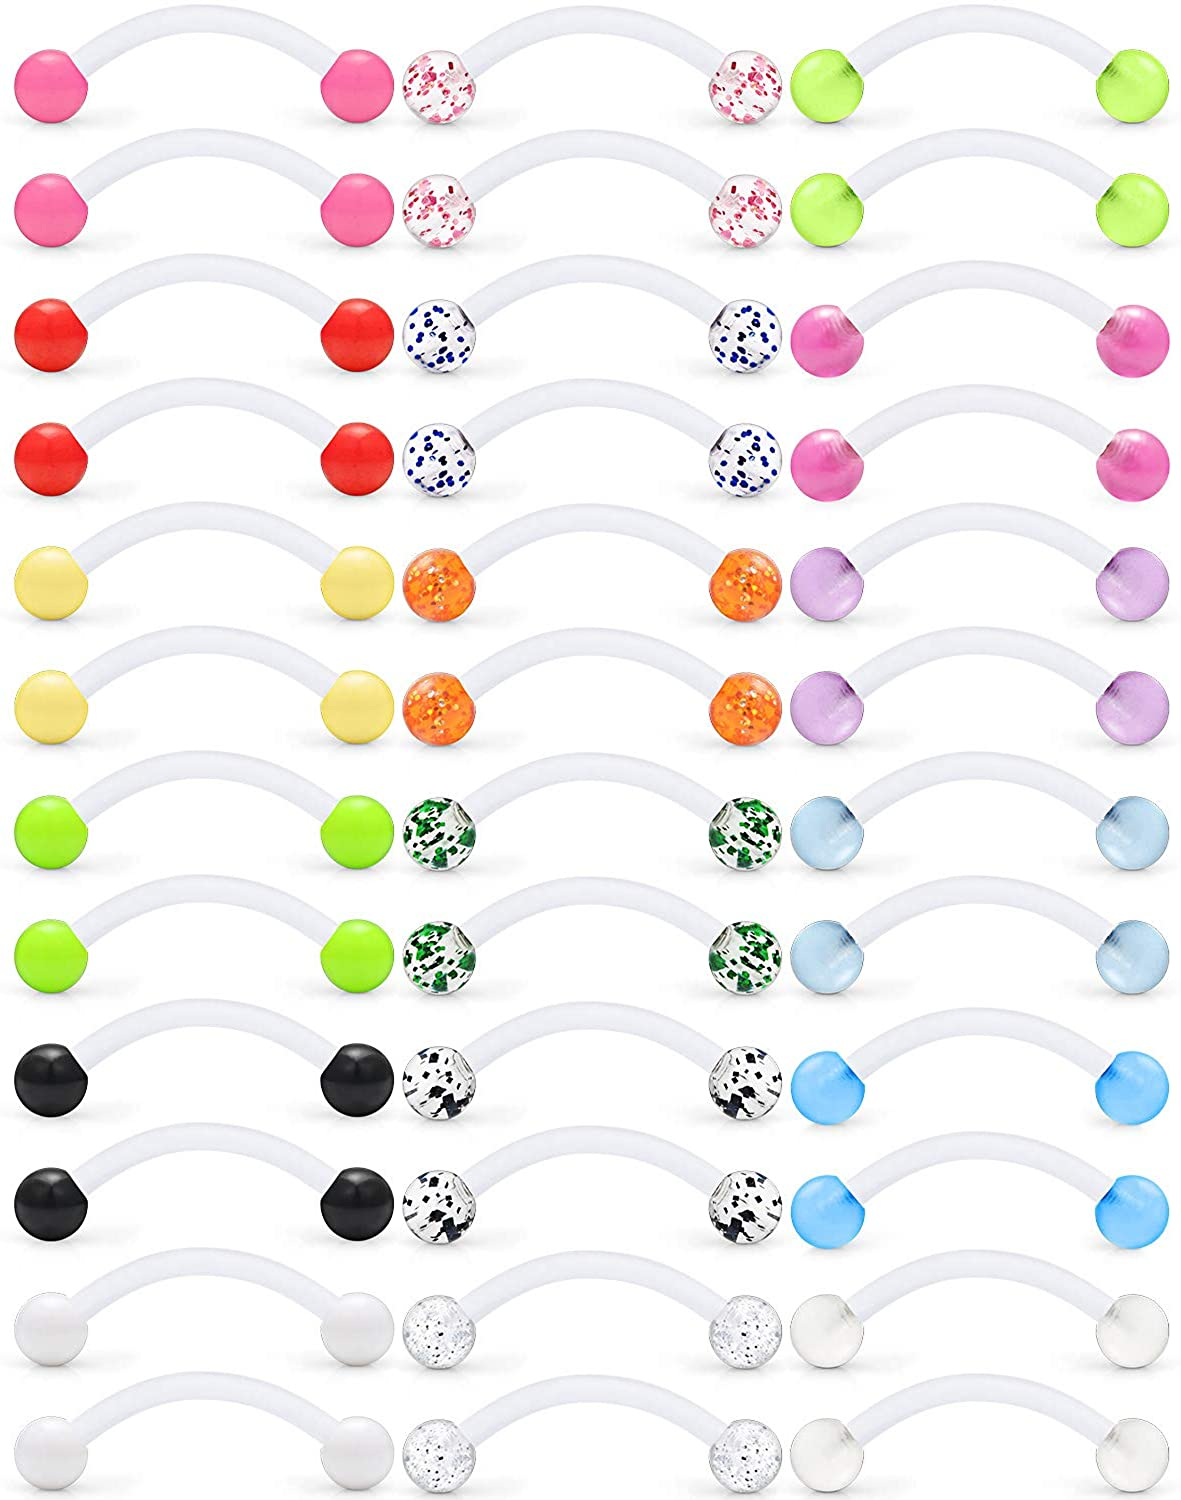 Ftovosyo 14G 16mm Glitter Bioflex Flexible Acrylic Curved Barbell Snake Eyes Tongue Nipple Ring Body Piercing Jewelry Retainer 8-36PCS